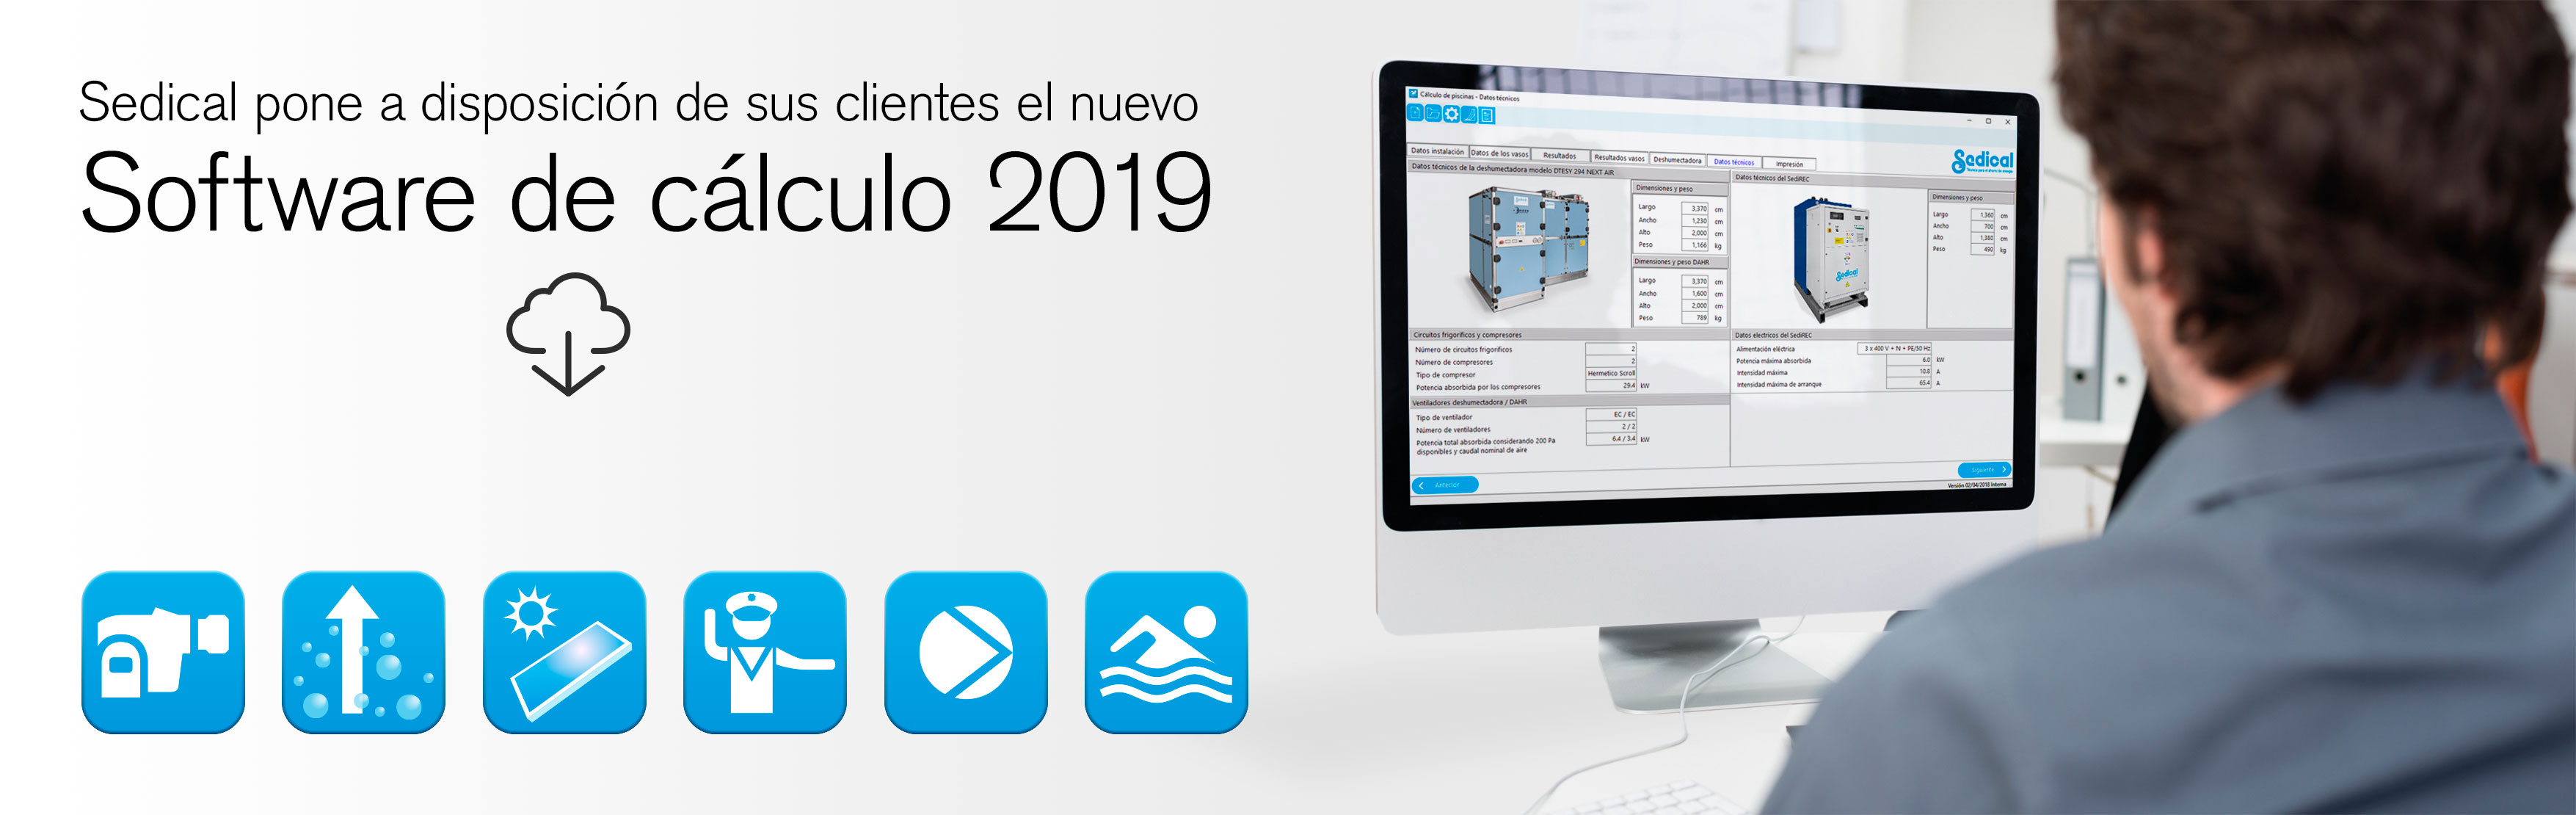 slide-software-calculo-2019